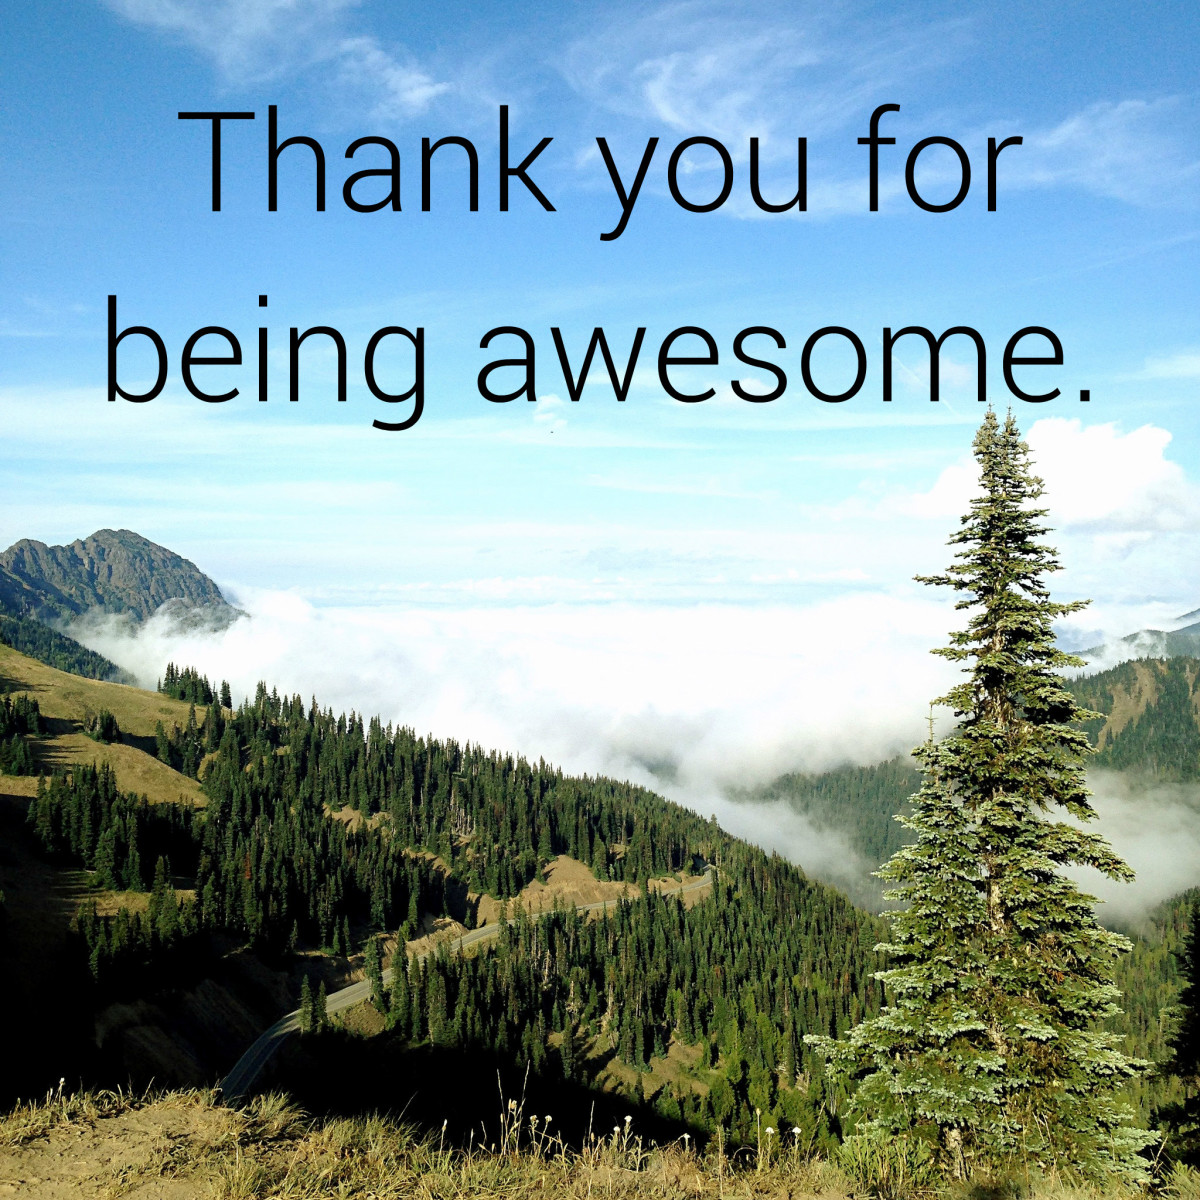 Send this picture to a friend to thank them for being so great.